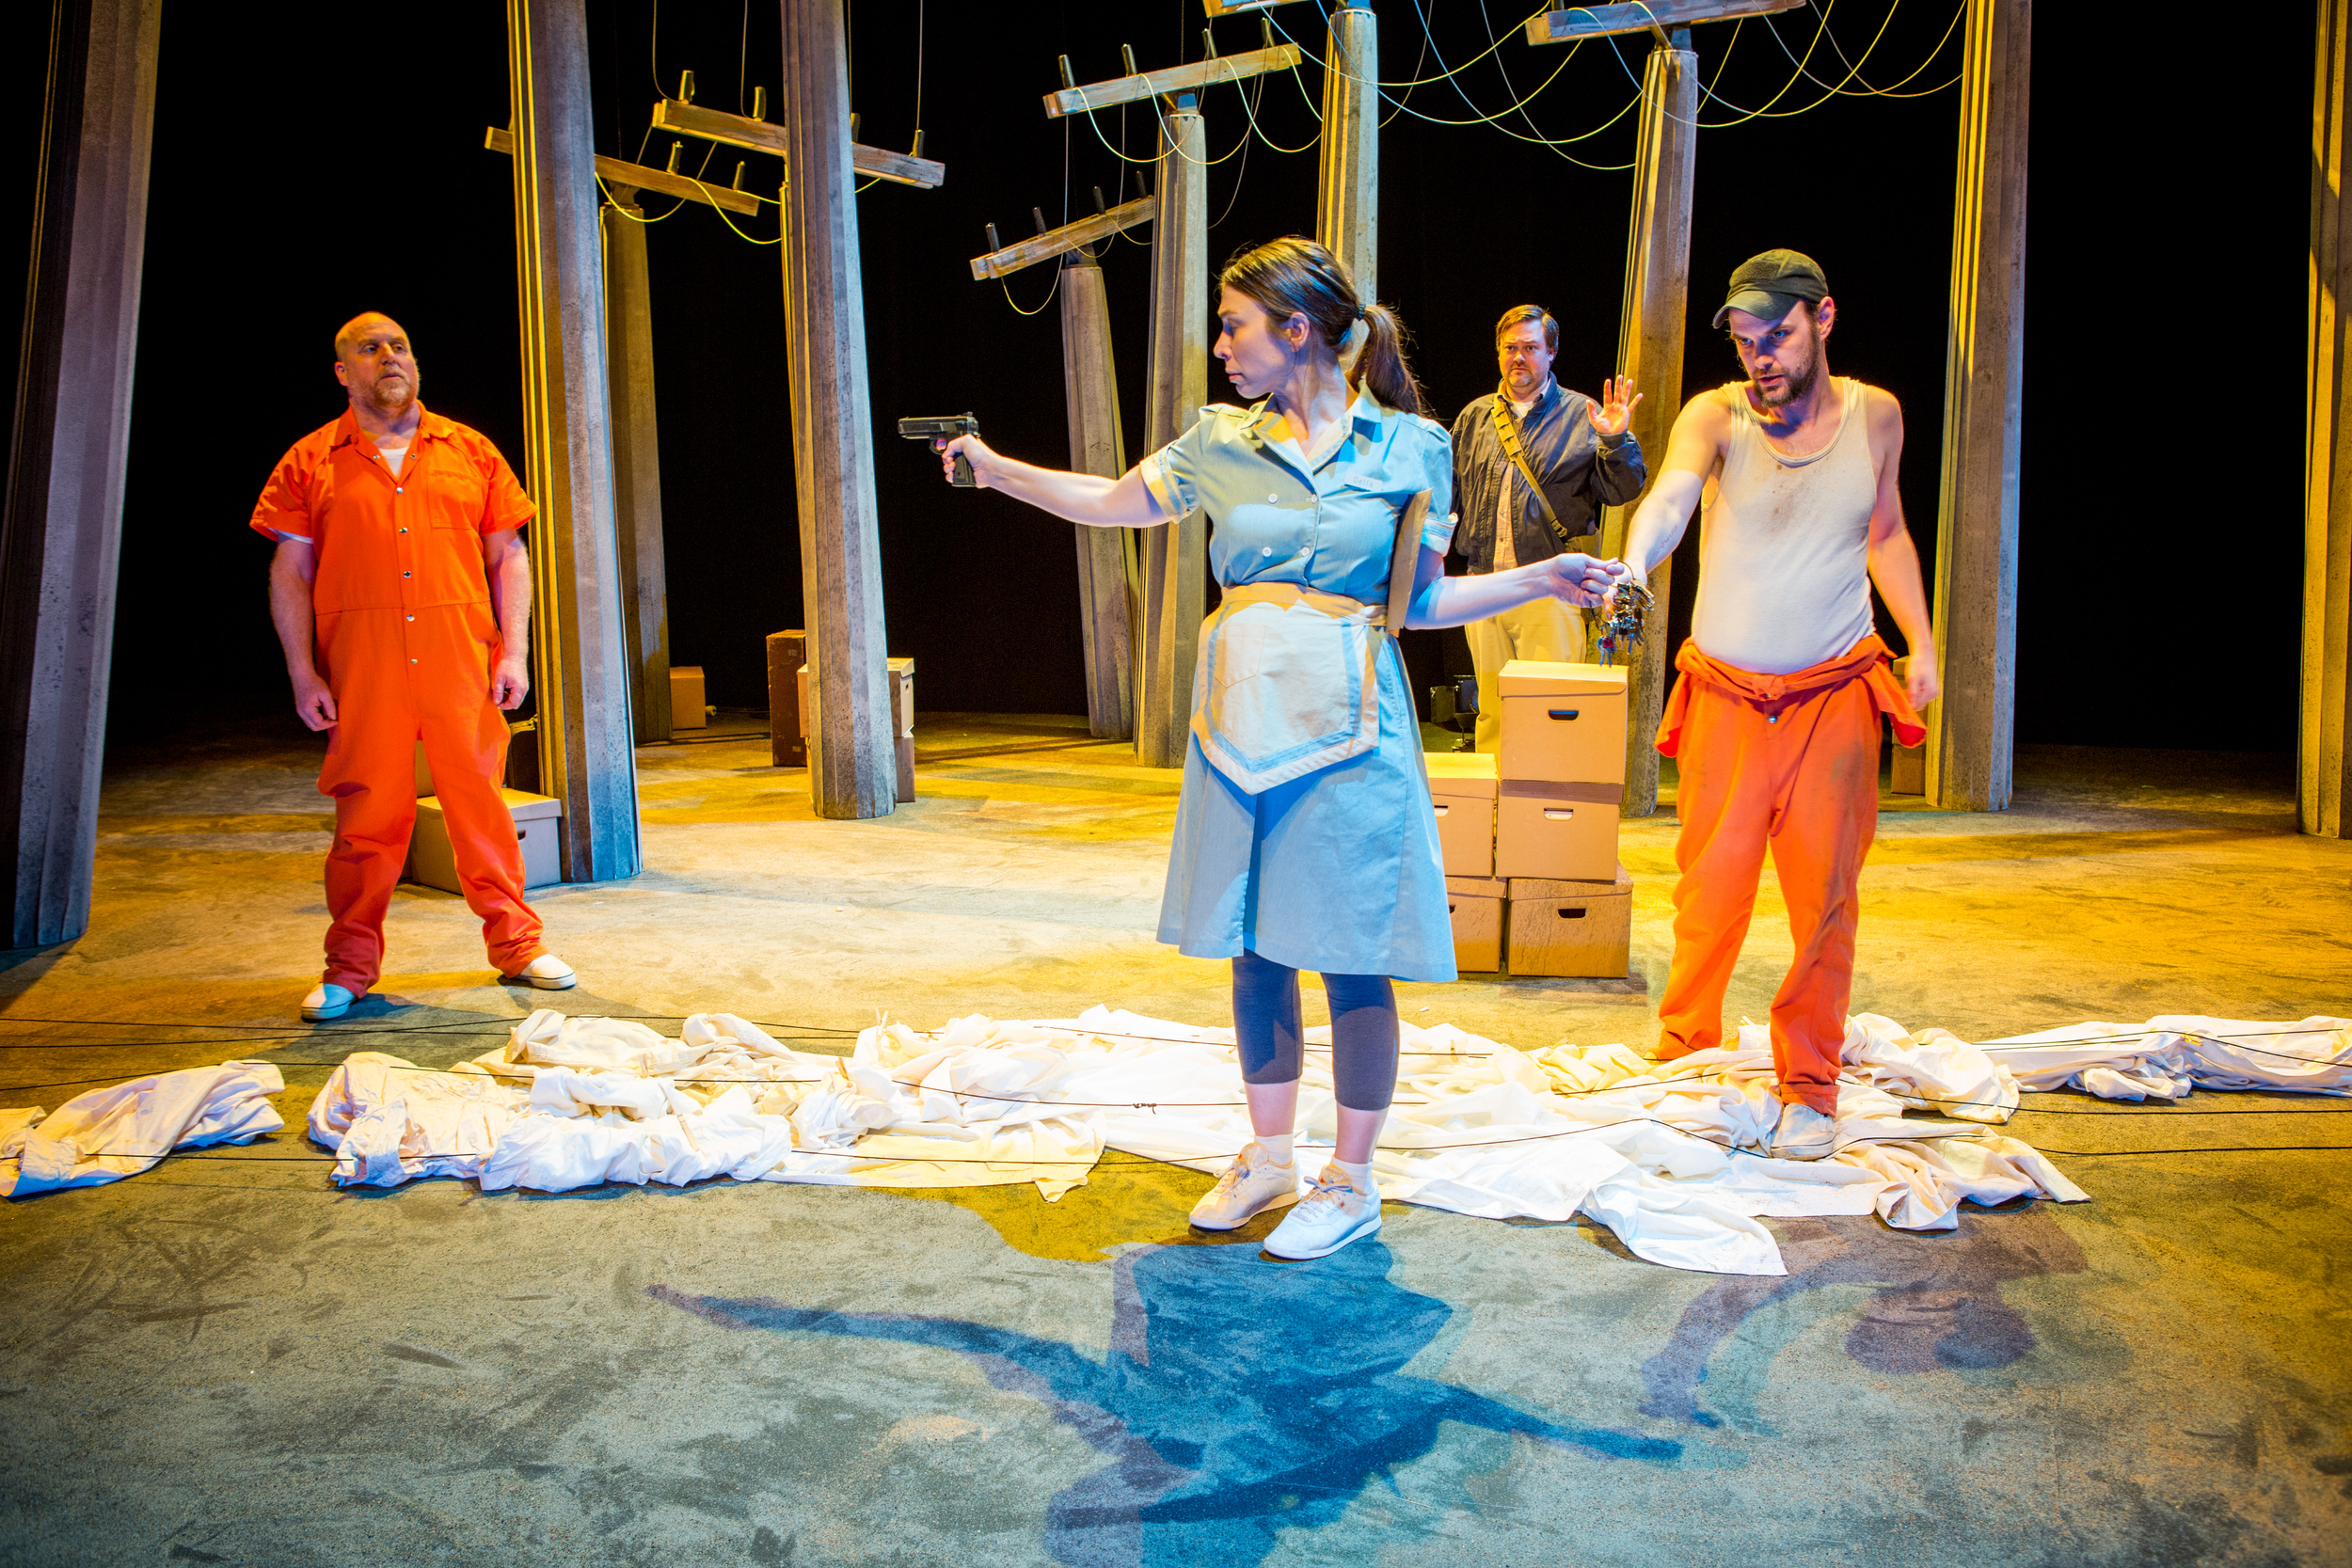 Laws of Thermodynamics - Production Photos - 20150215 - 0016.jpg